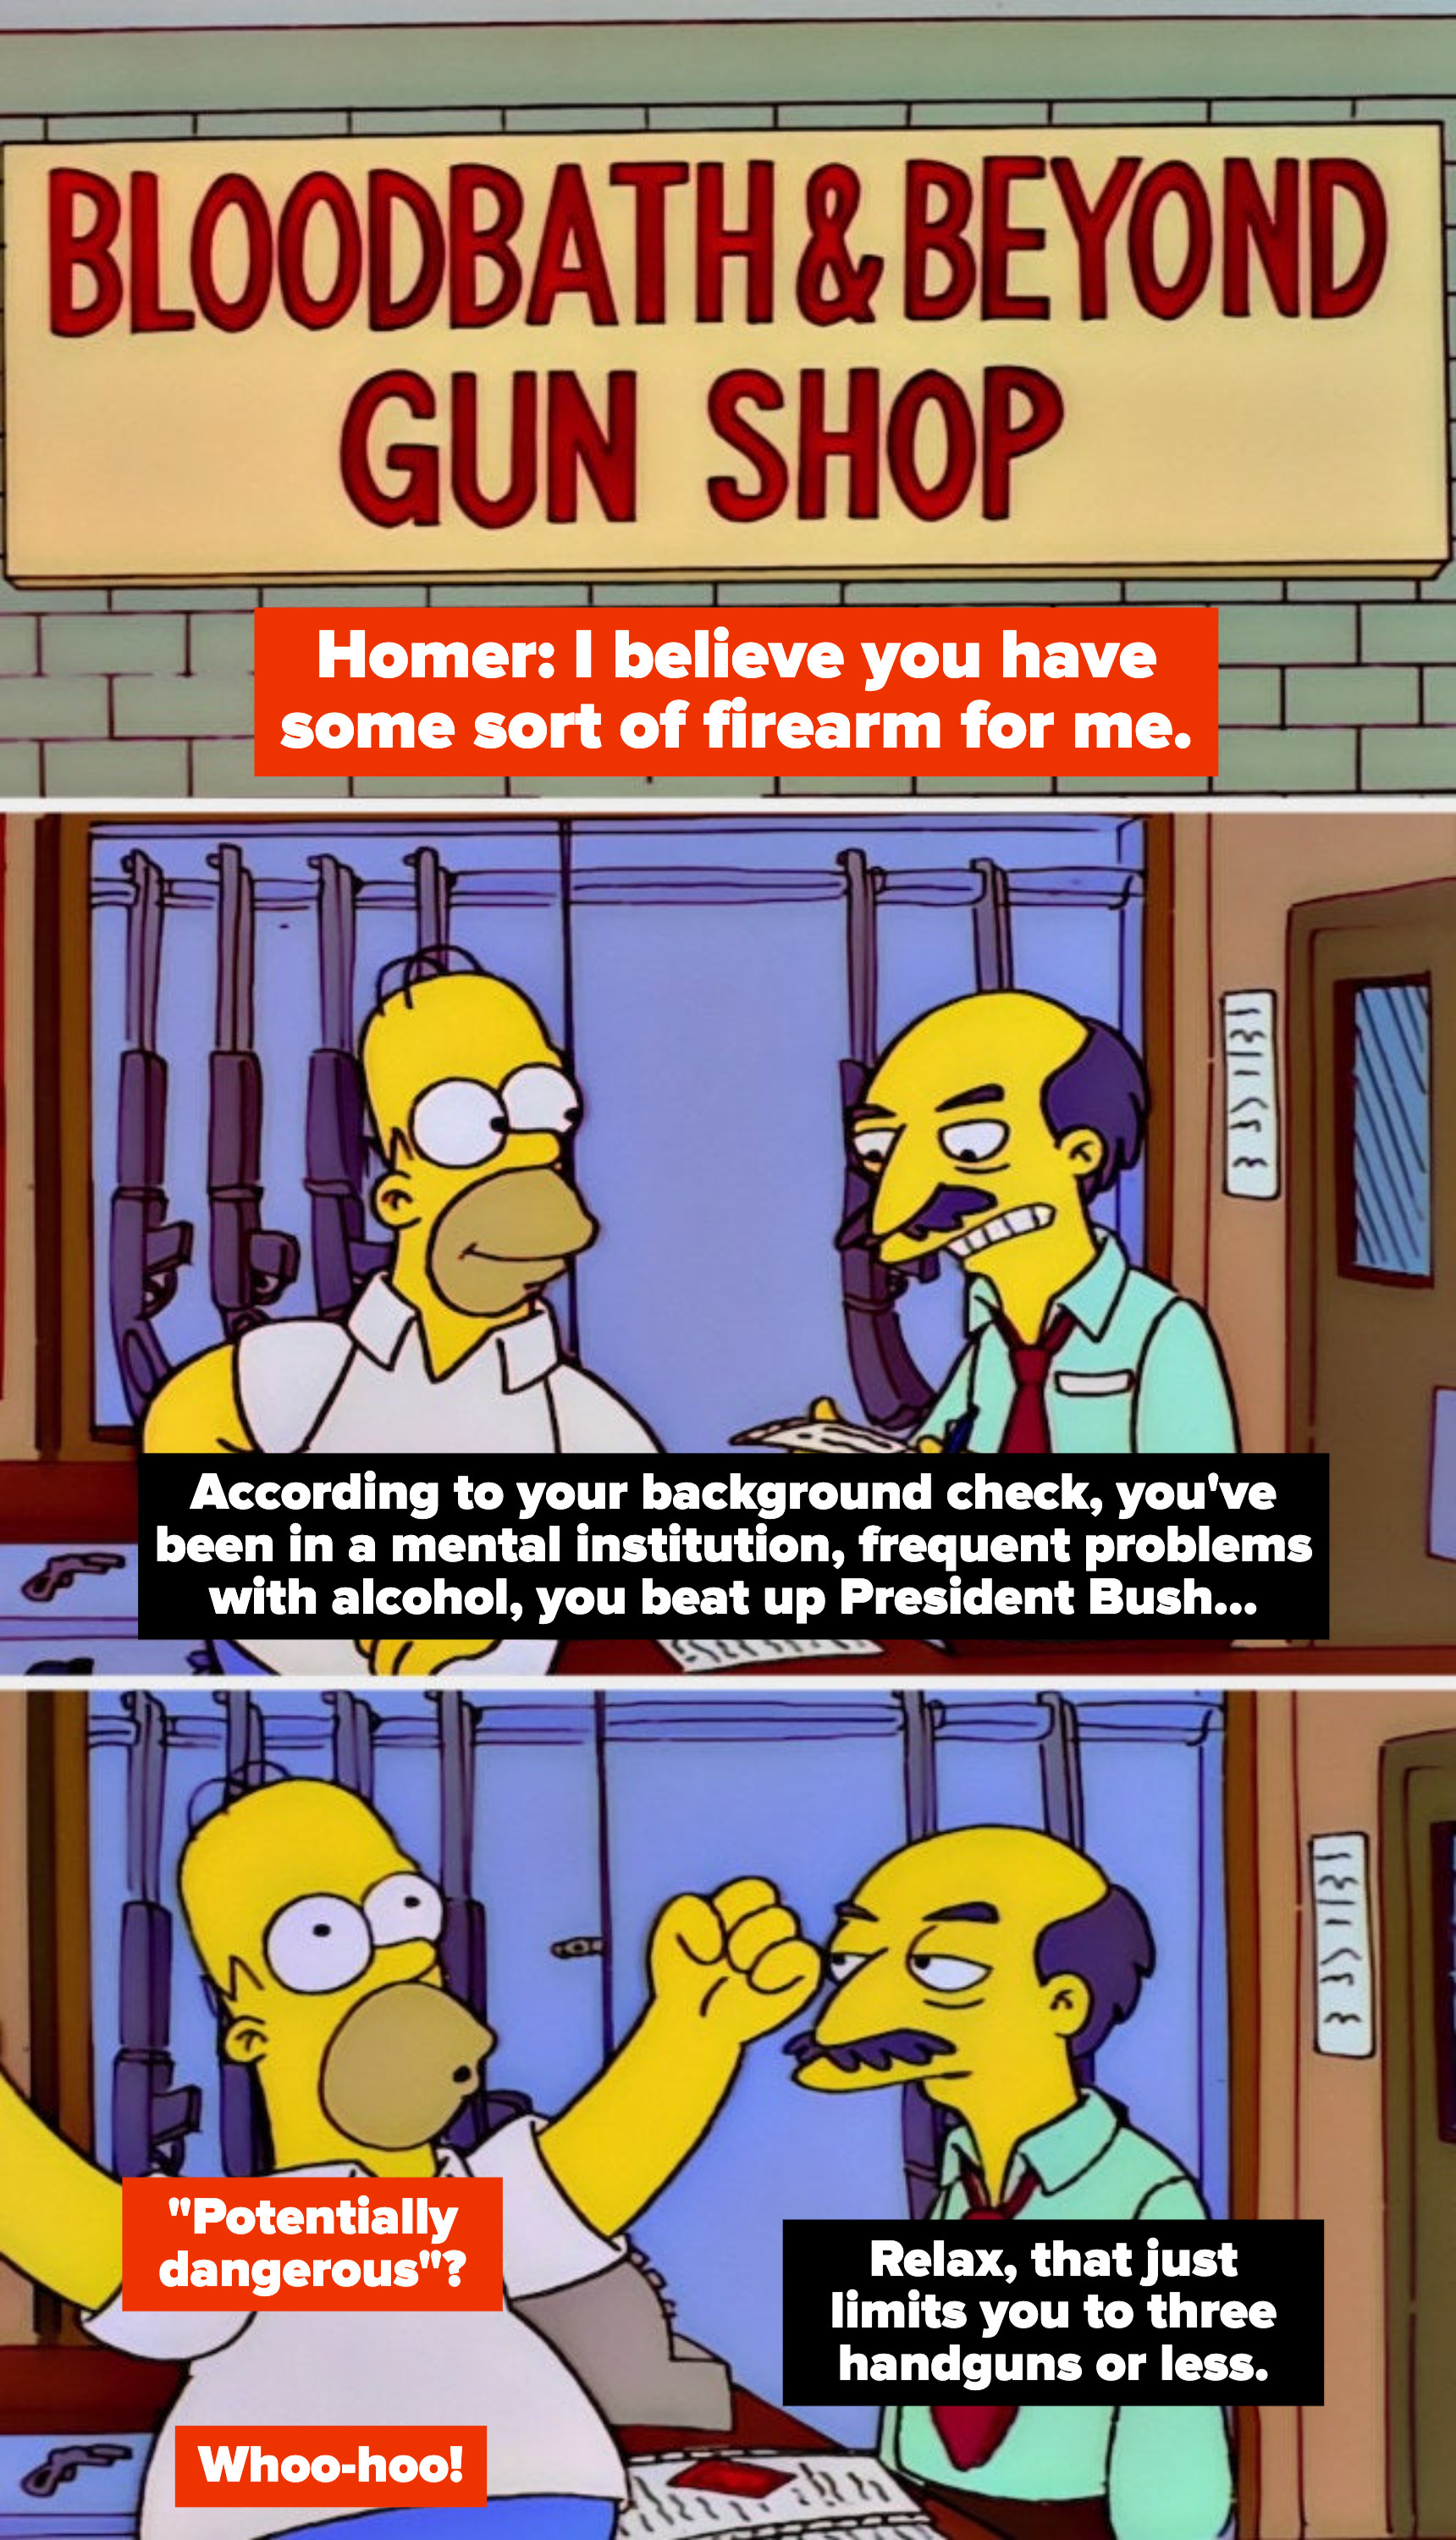 """The firearm clerk letting Homer buy a handgun, despite his background check: """"You've been in a mental institution, frequent problems with alcohol, you beat up President Bush"""""""